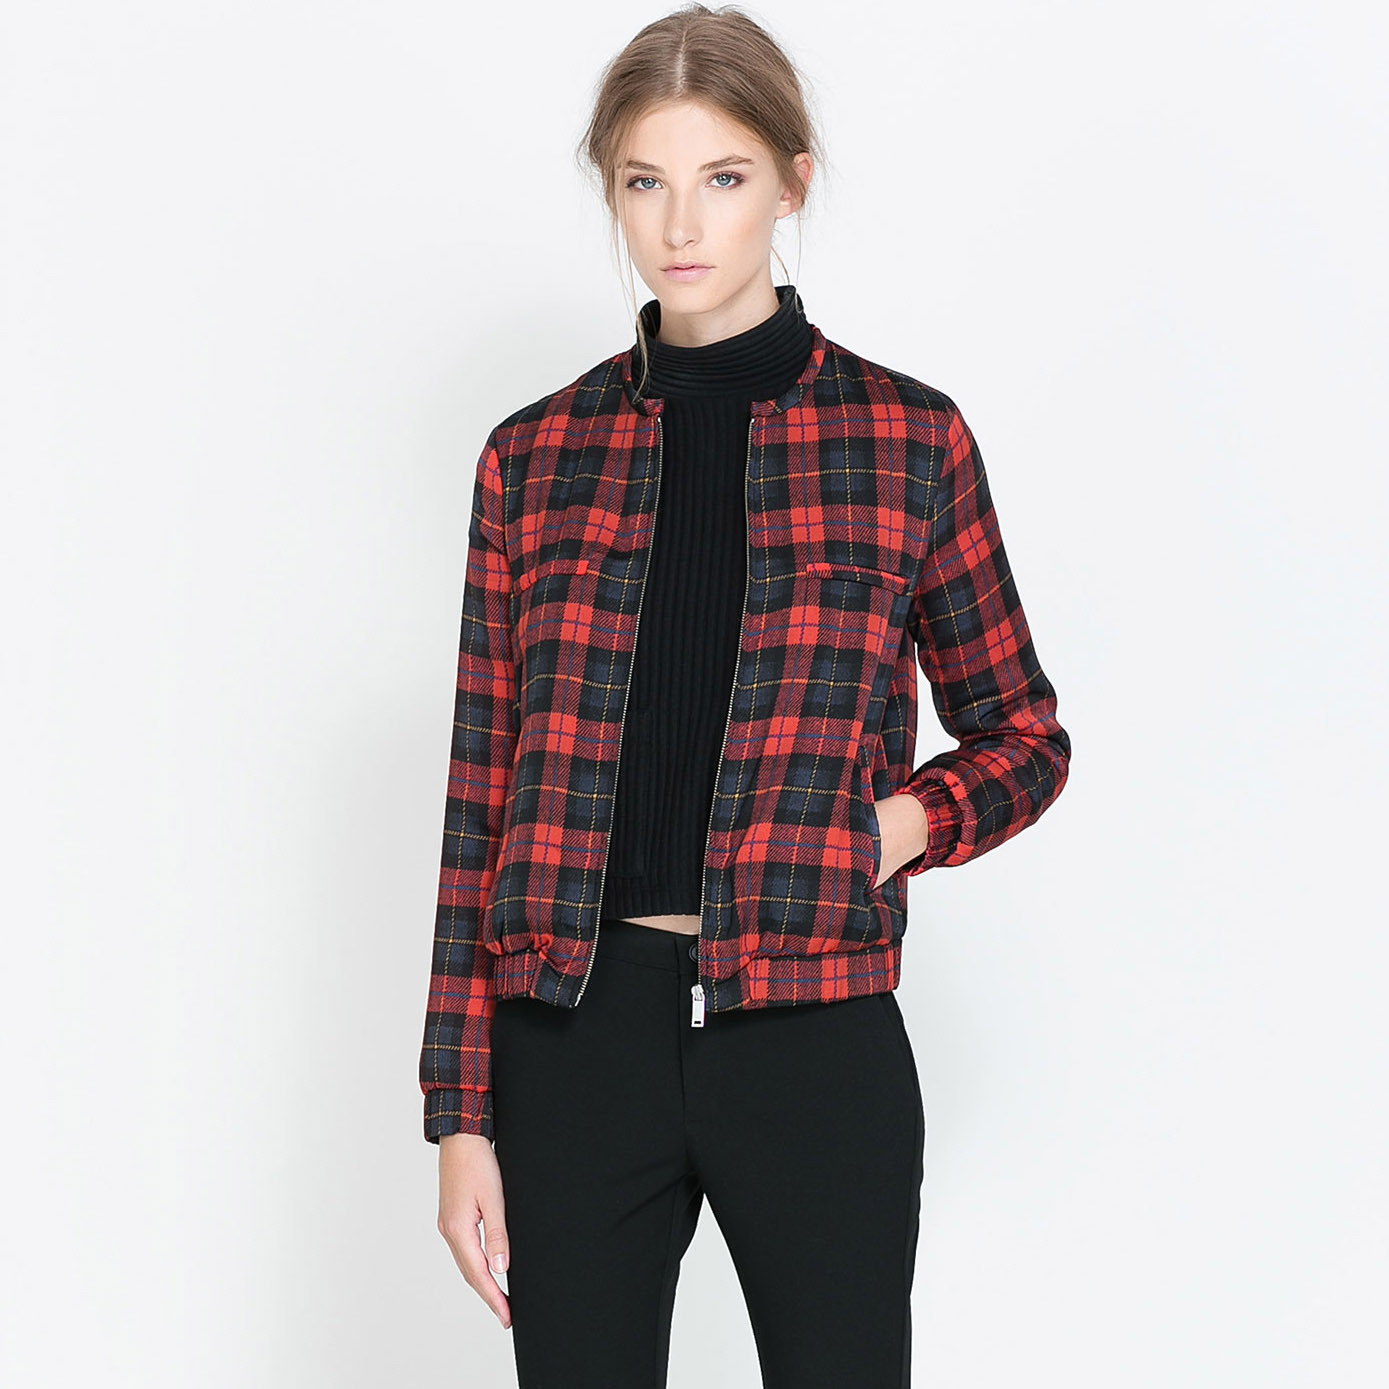 Plaid Wide-waisted Regular Casual Jackets Womens Coats And Jackets Autumn/spring 2015 Grid Zipper Opening  Wholesale